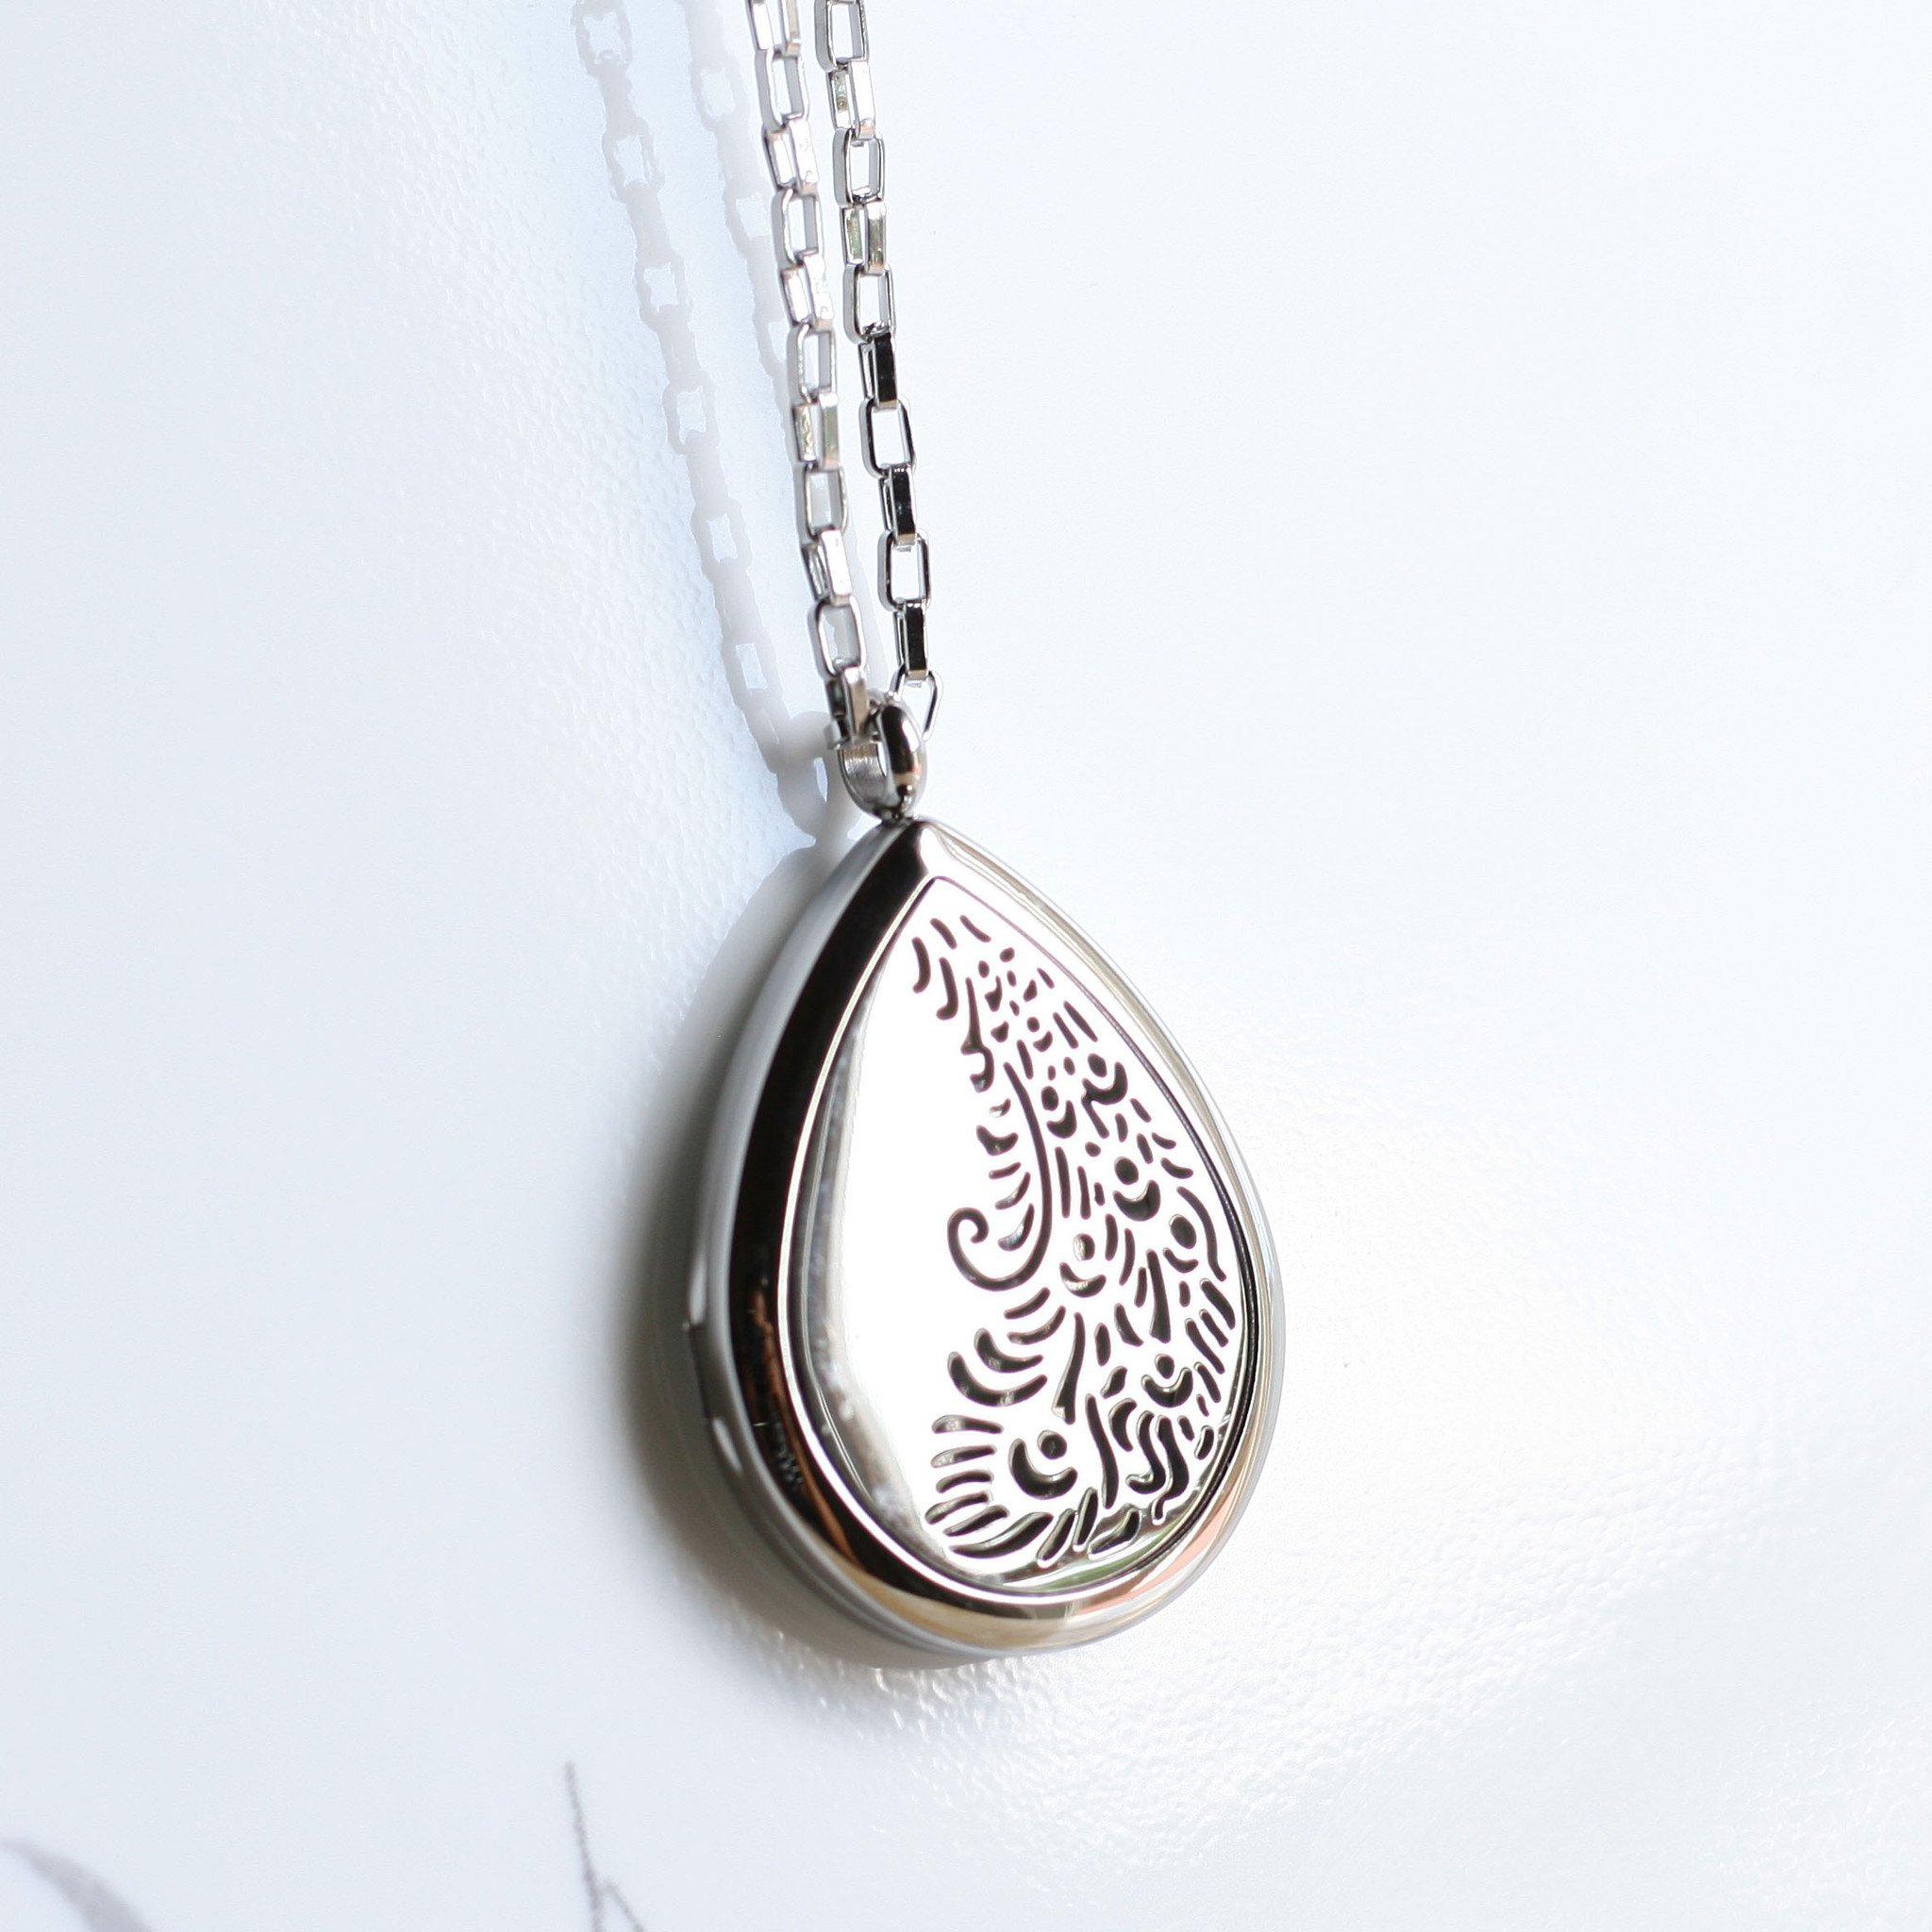 """Image of Aromatherapy Essential Oil Diffuser Necklace - Stainless Steel Jewelry - Hypo-allergenic 316L Surgical 30 mm Locket Pendant with 24"""" Chain & 3 Washable Pads (Model Peacock)"""